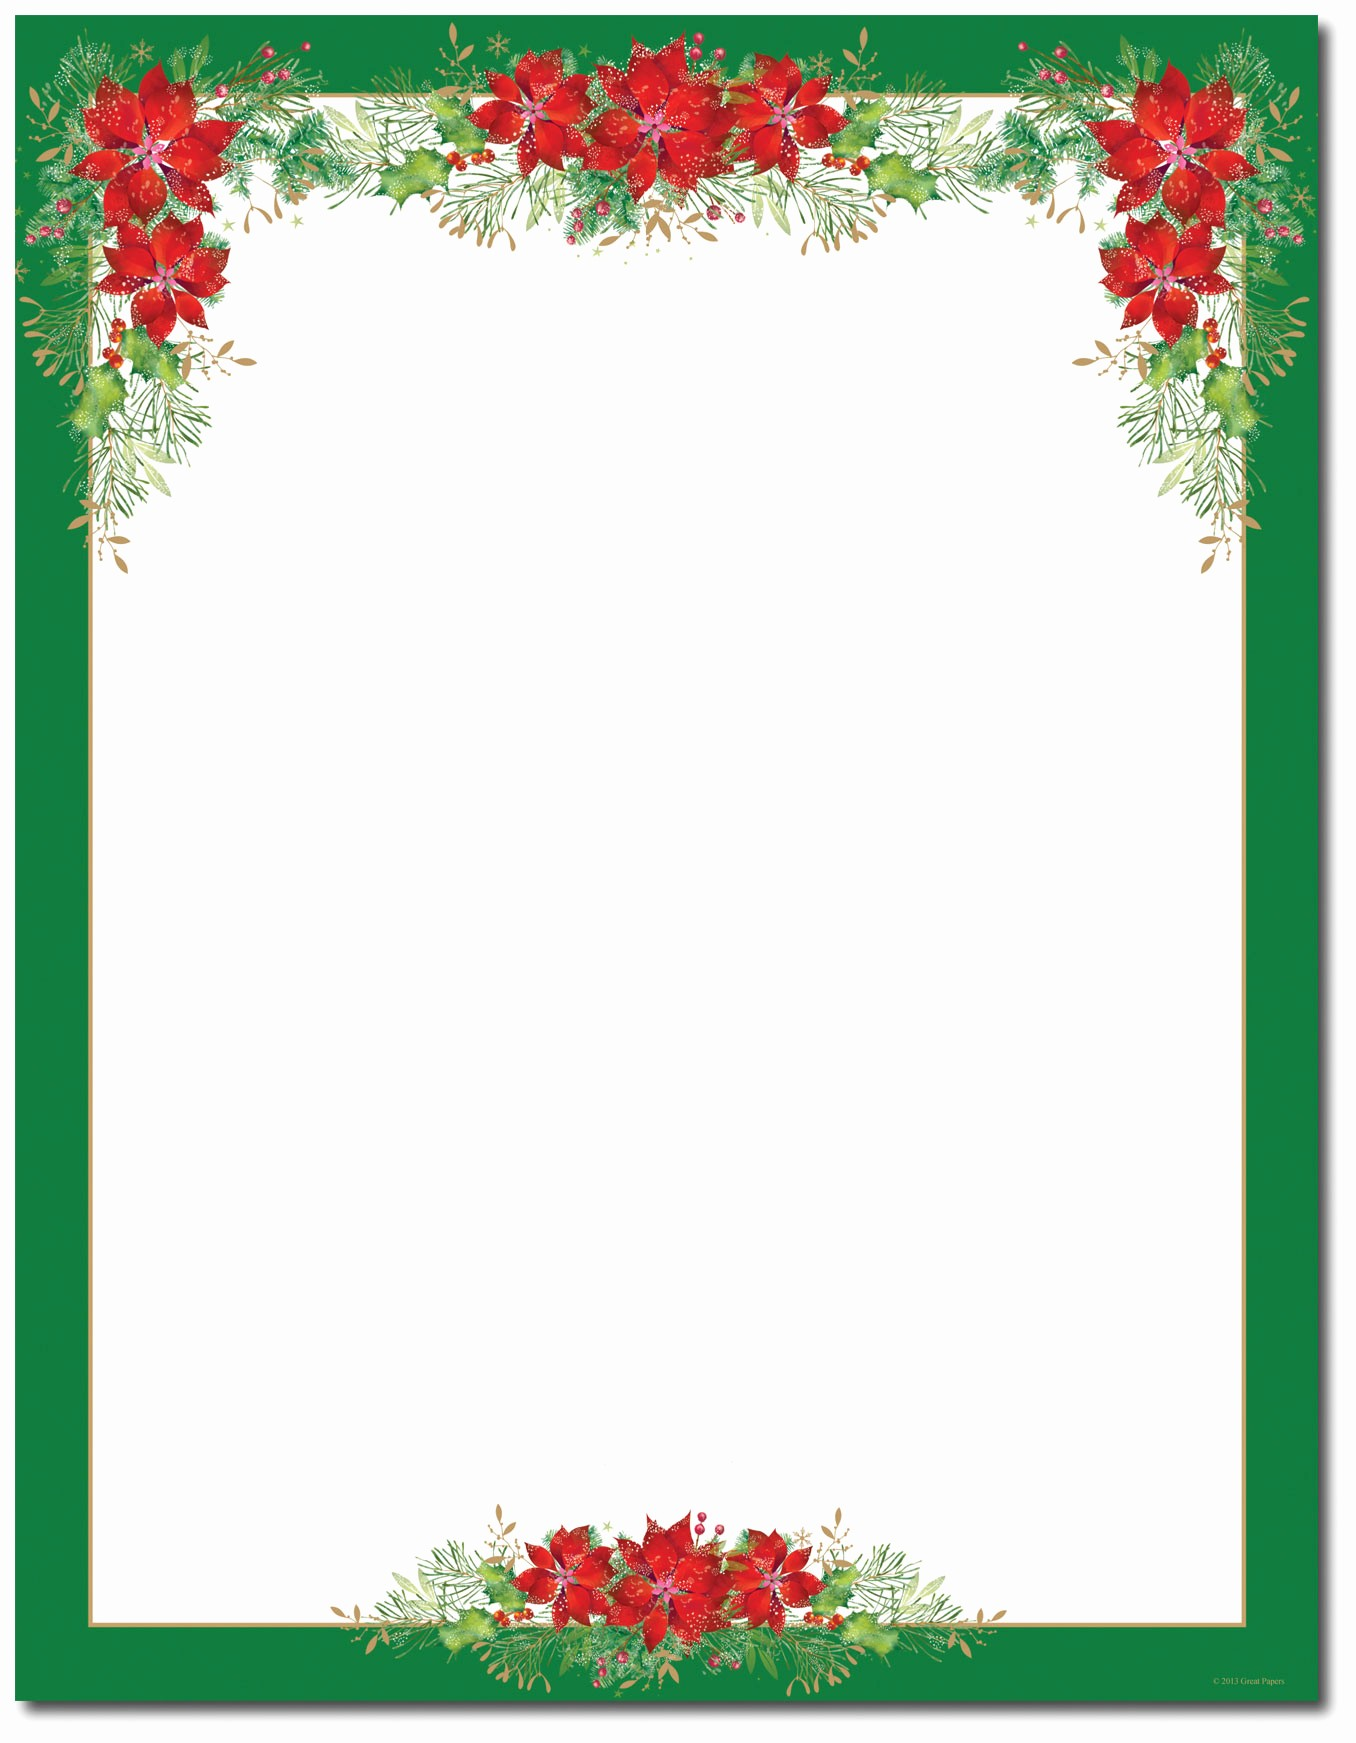 Christmas Stationery Templates Word Free Luxury Christmas Stationery Printer Paper